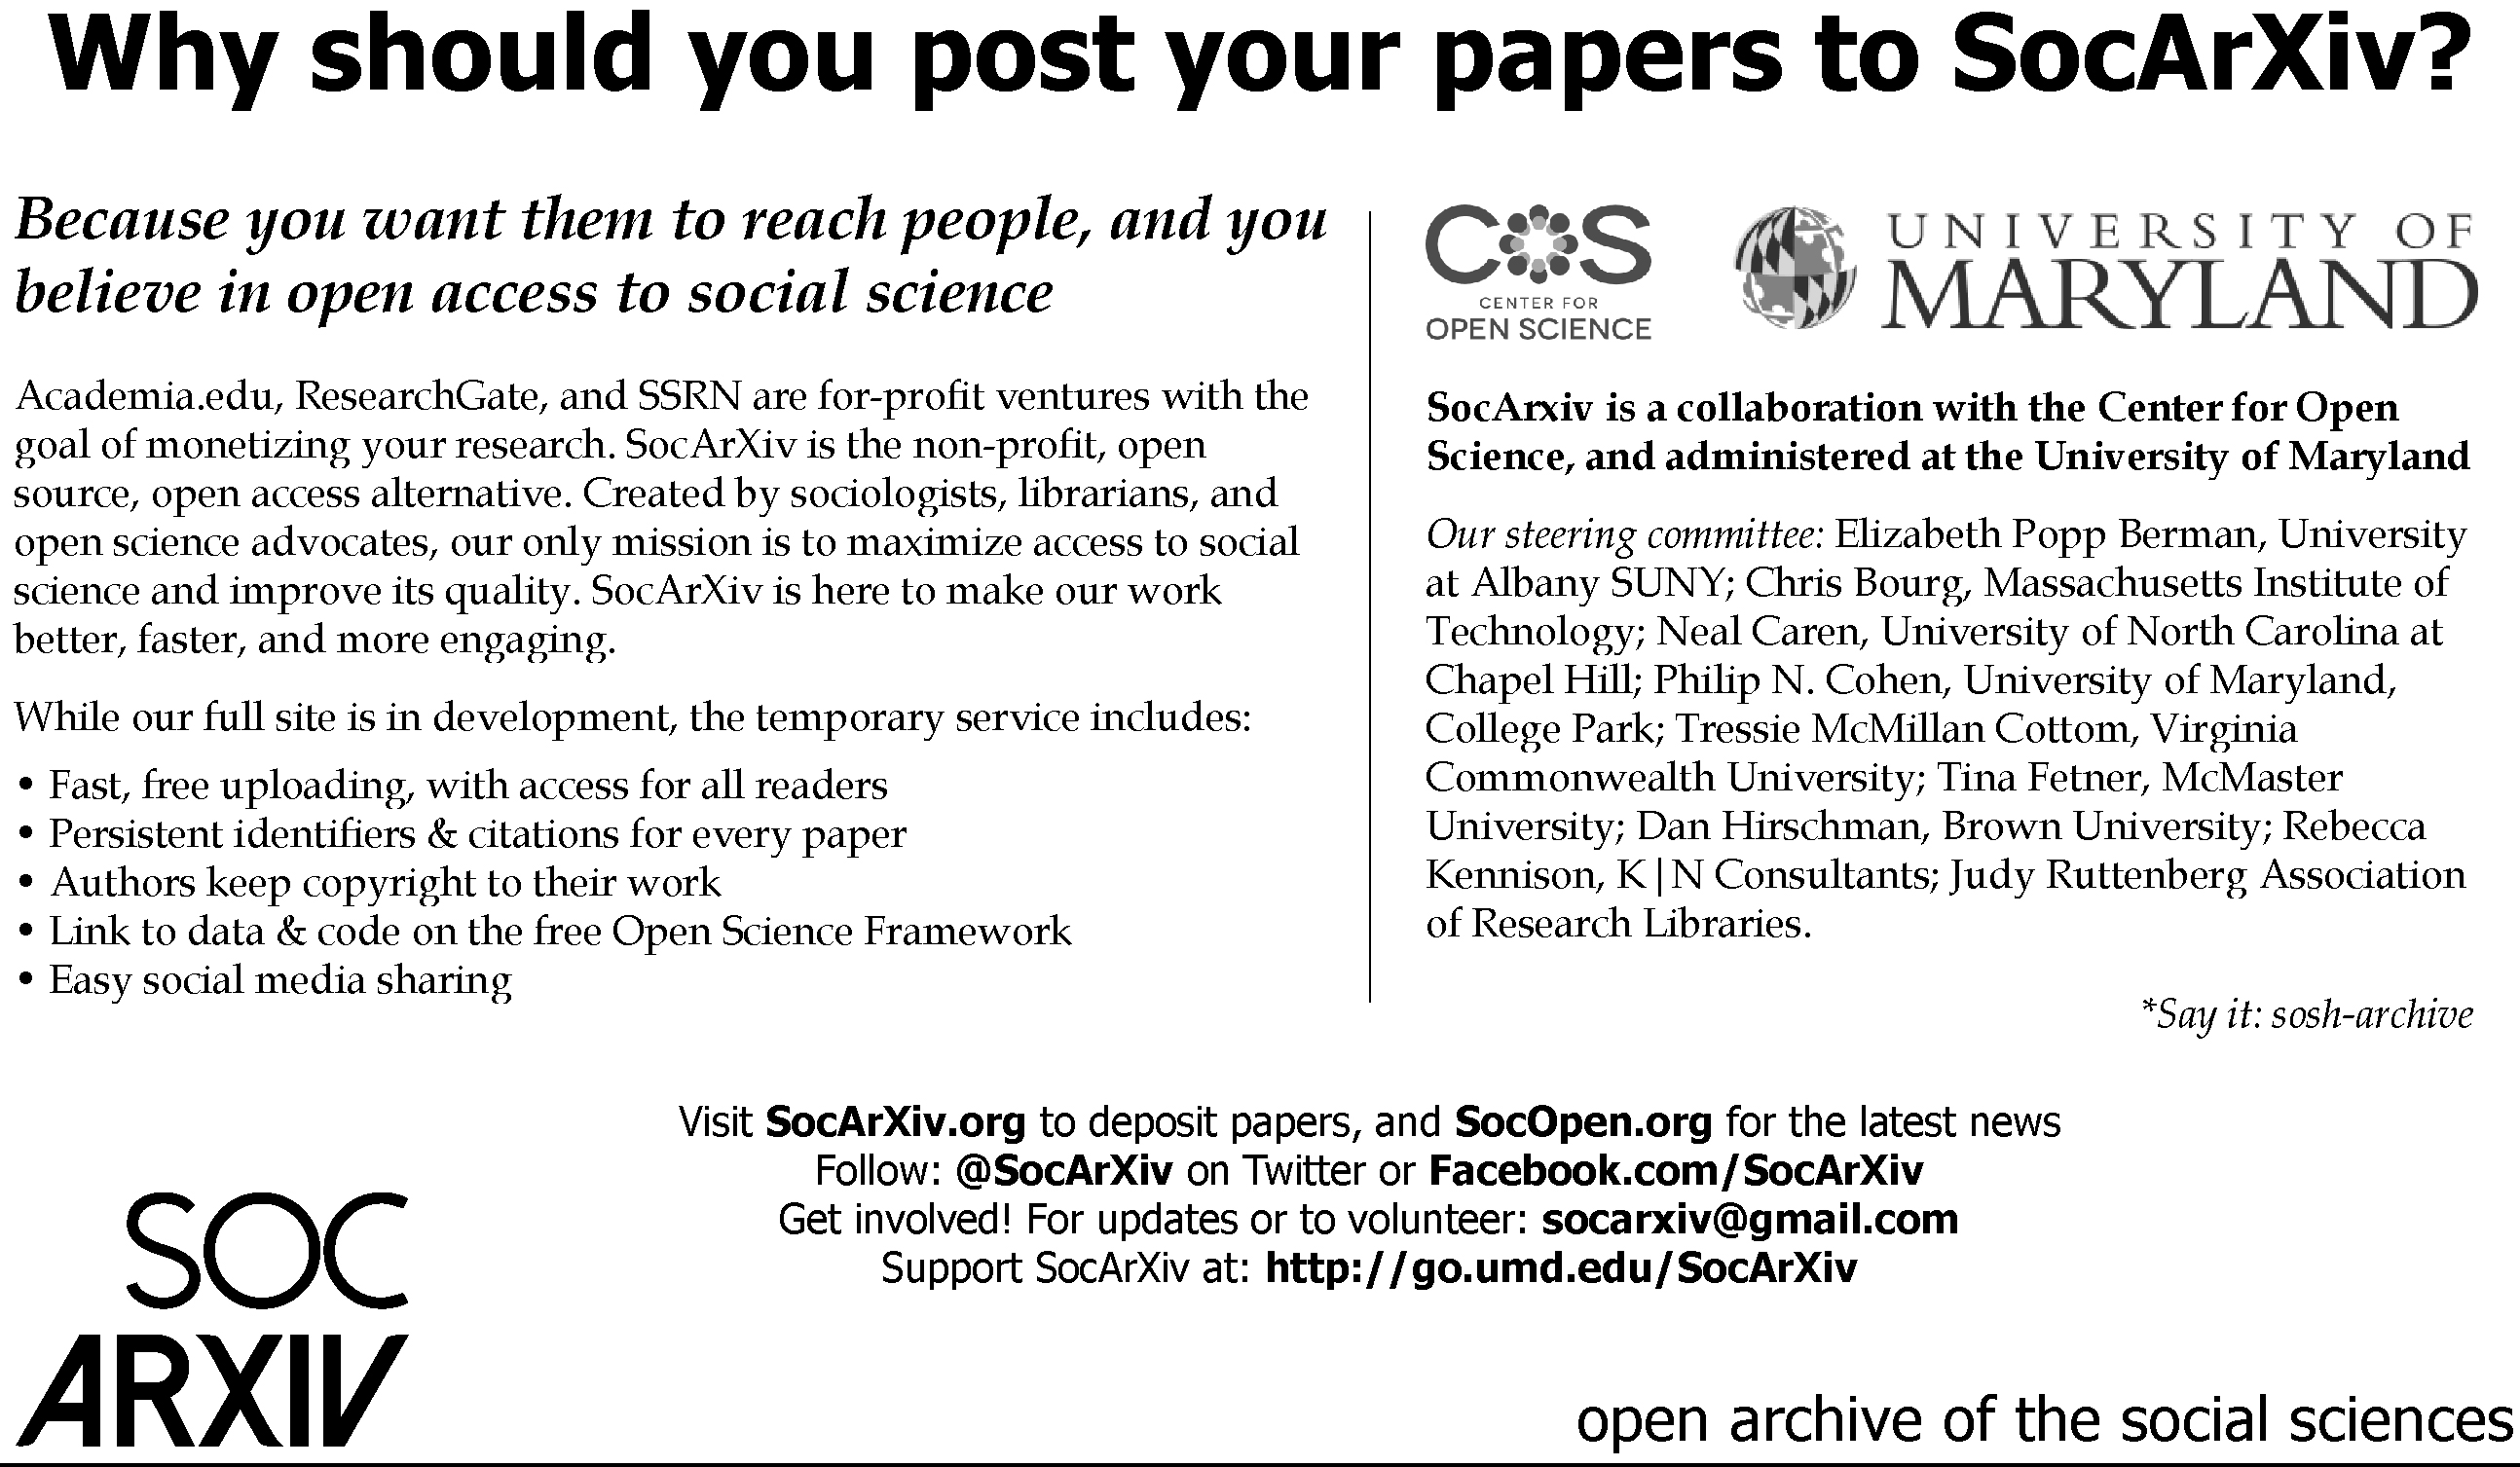 information flyer for SocArxiv, the open archive of the social sciences